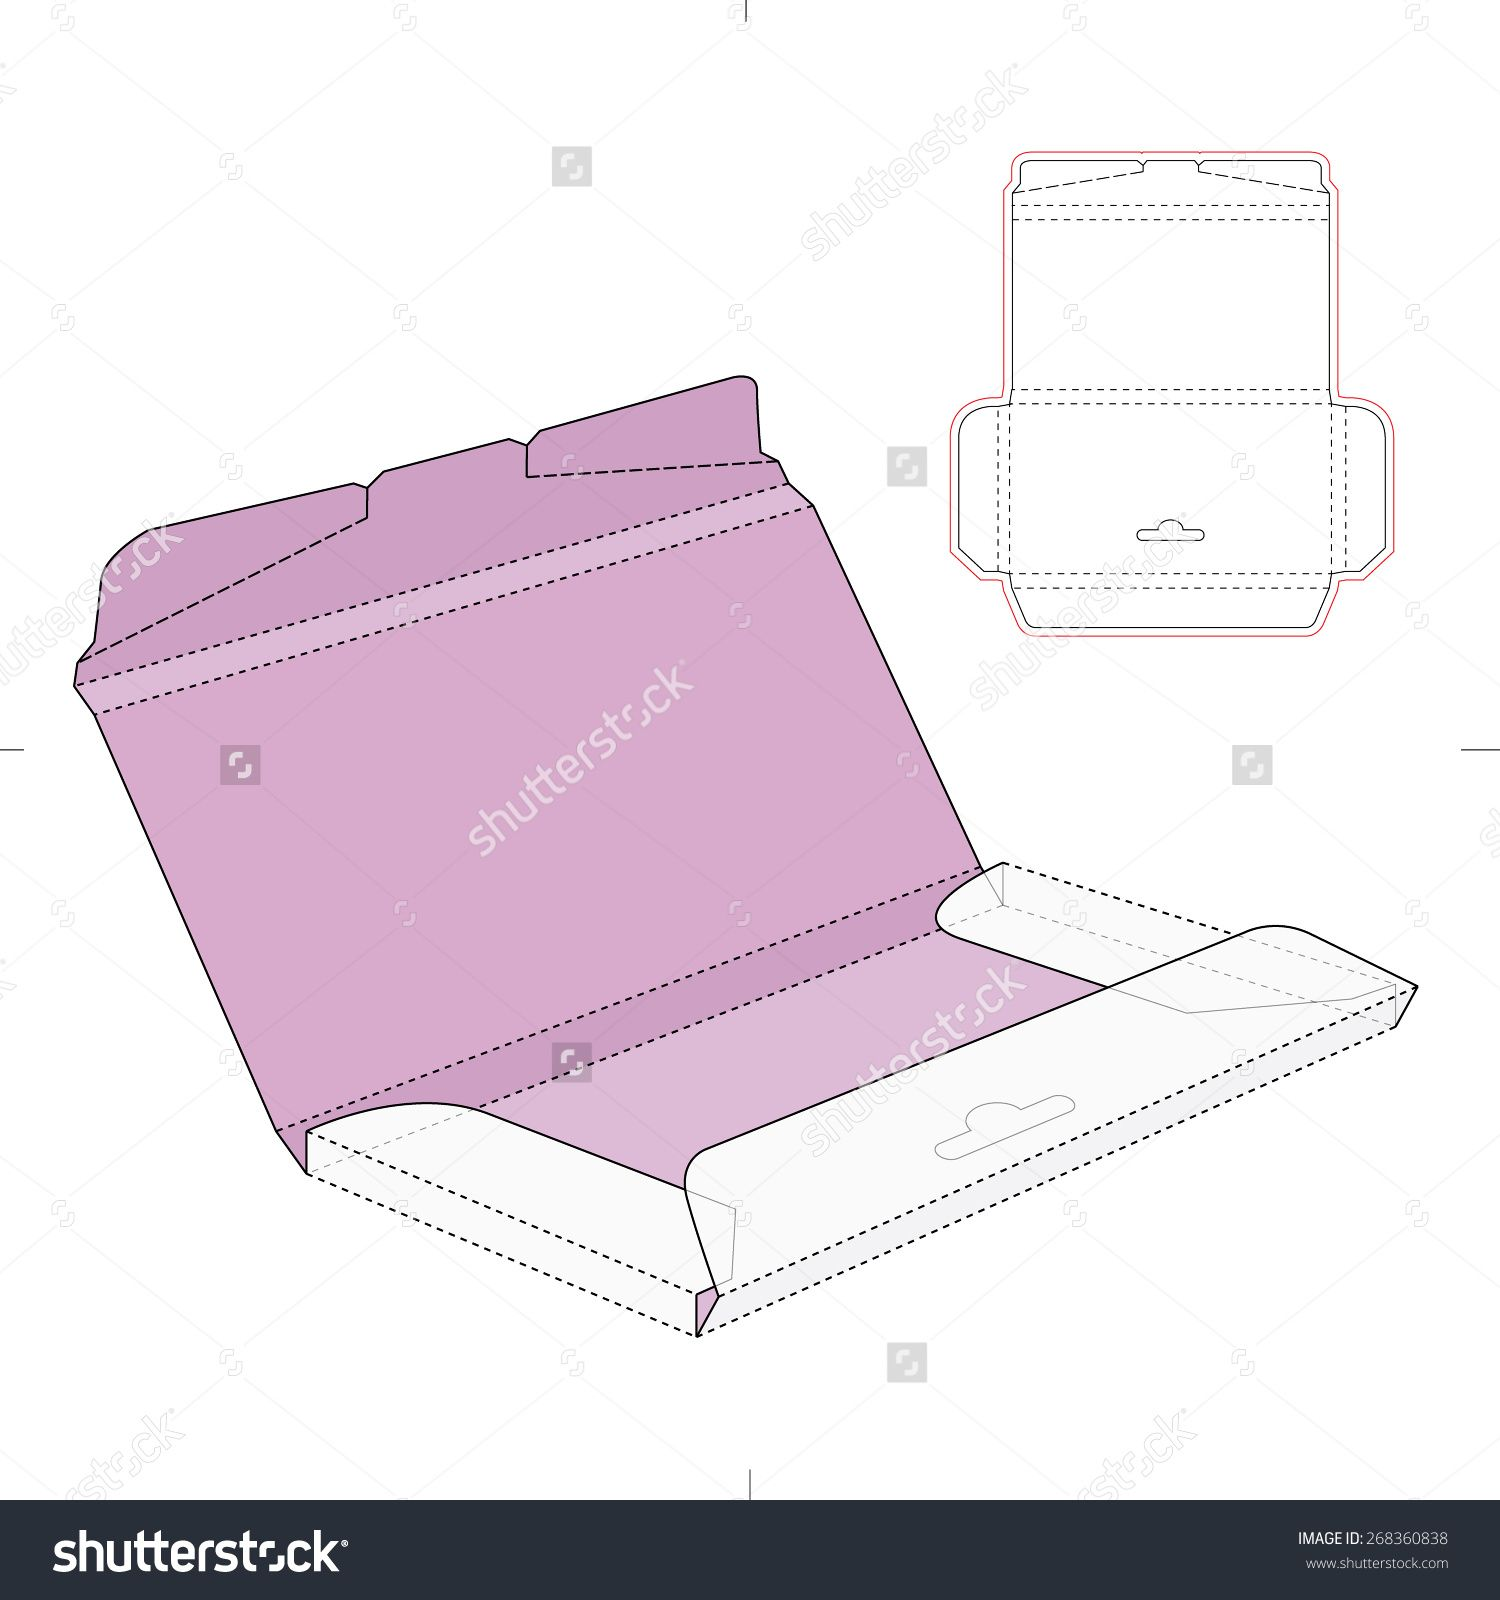 Chocolate Box With Cut Template Stock Vector Illustration Shutterstock